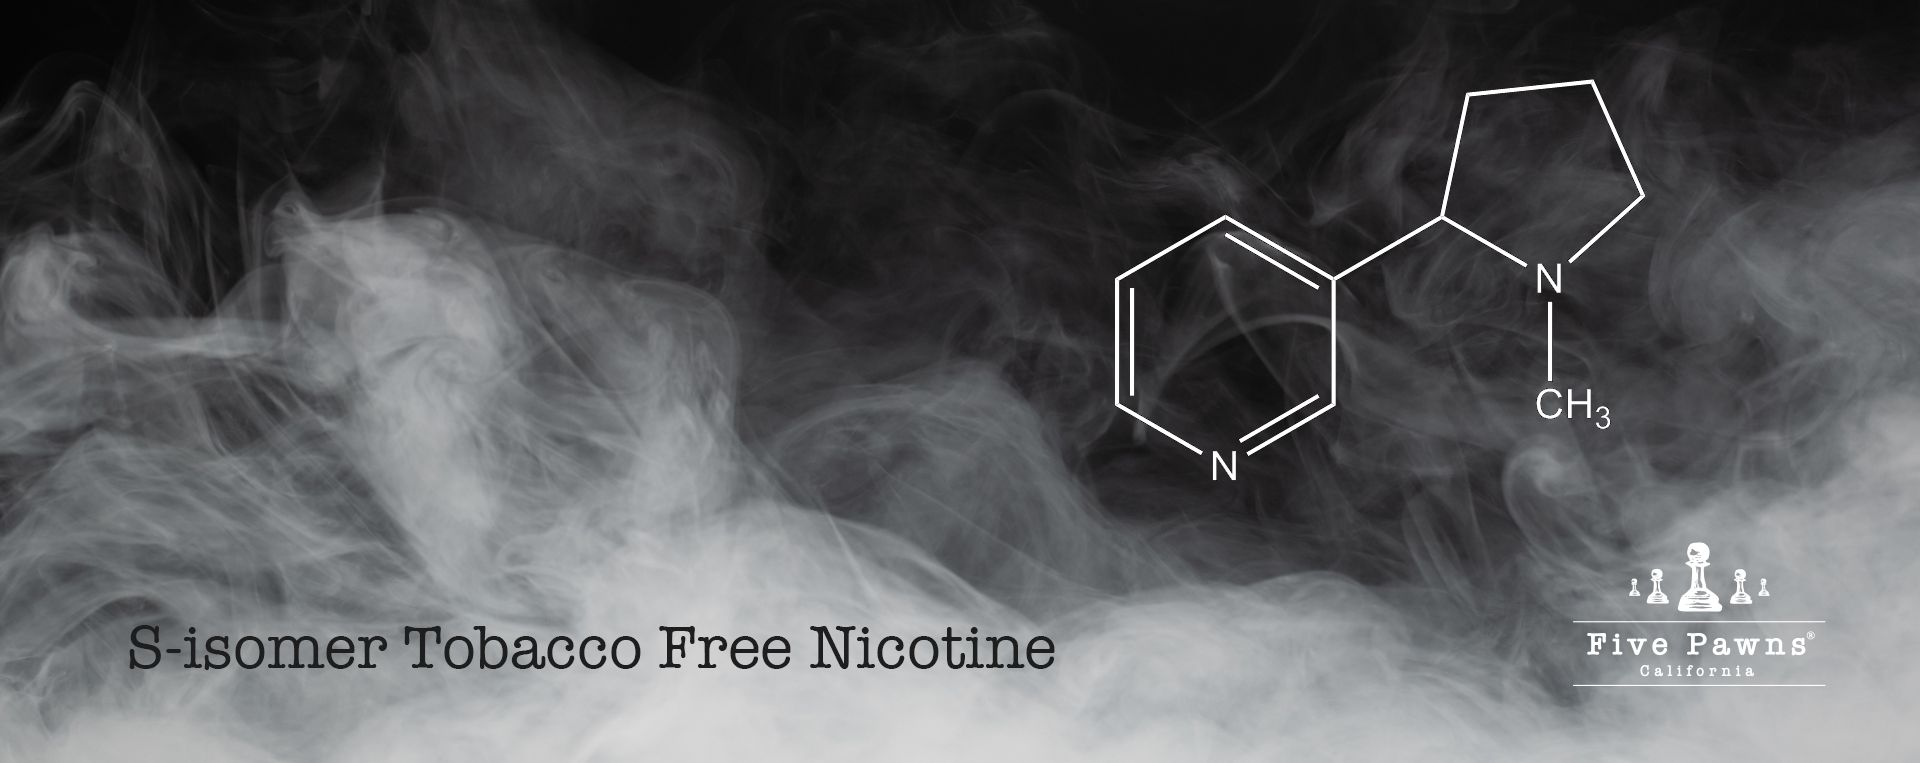 S-isomer, the purest form of tobacco free nicotine